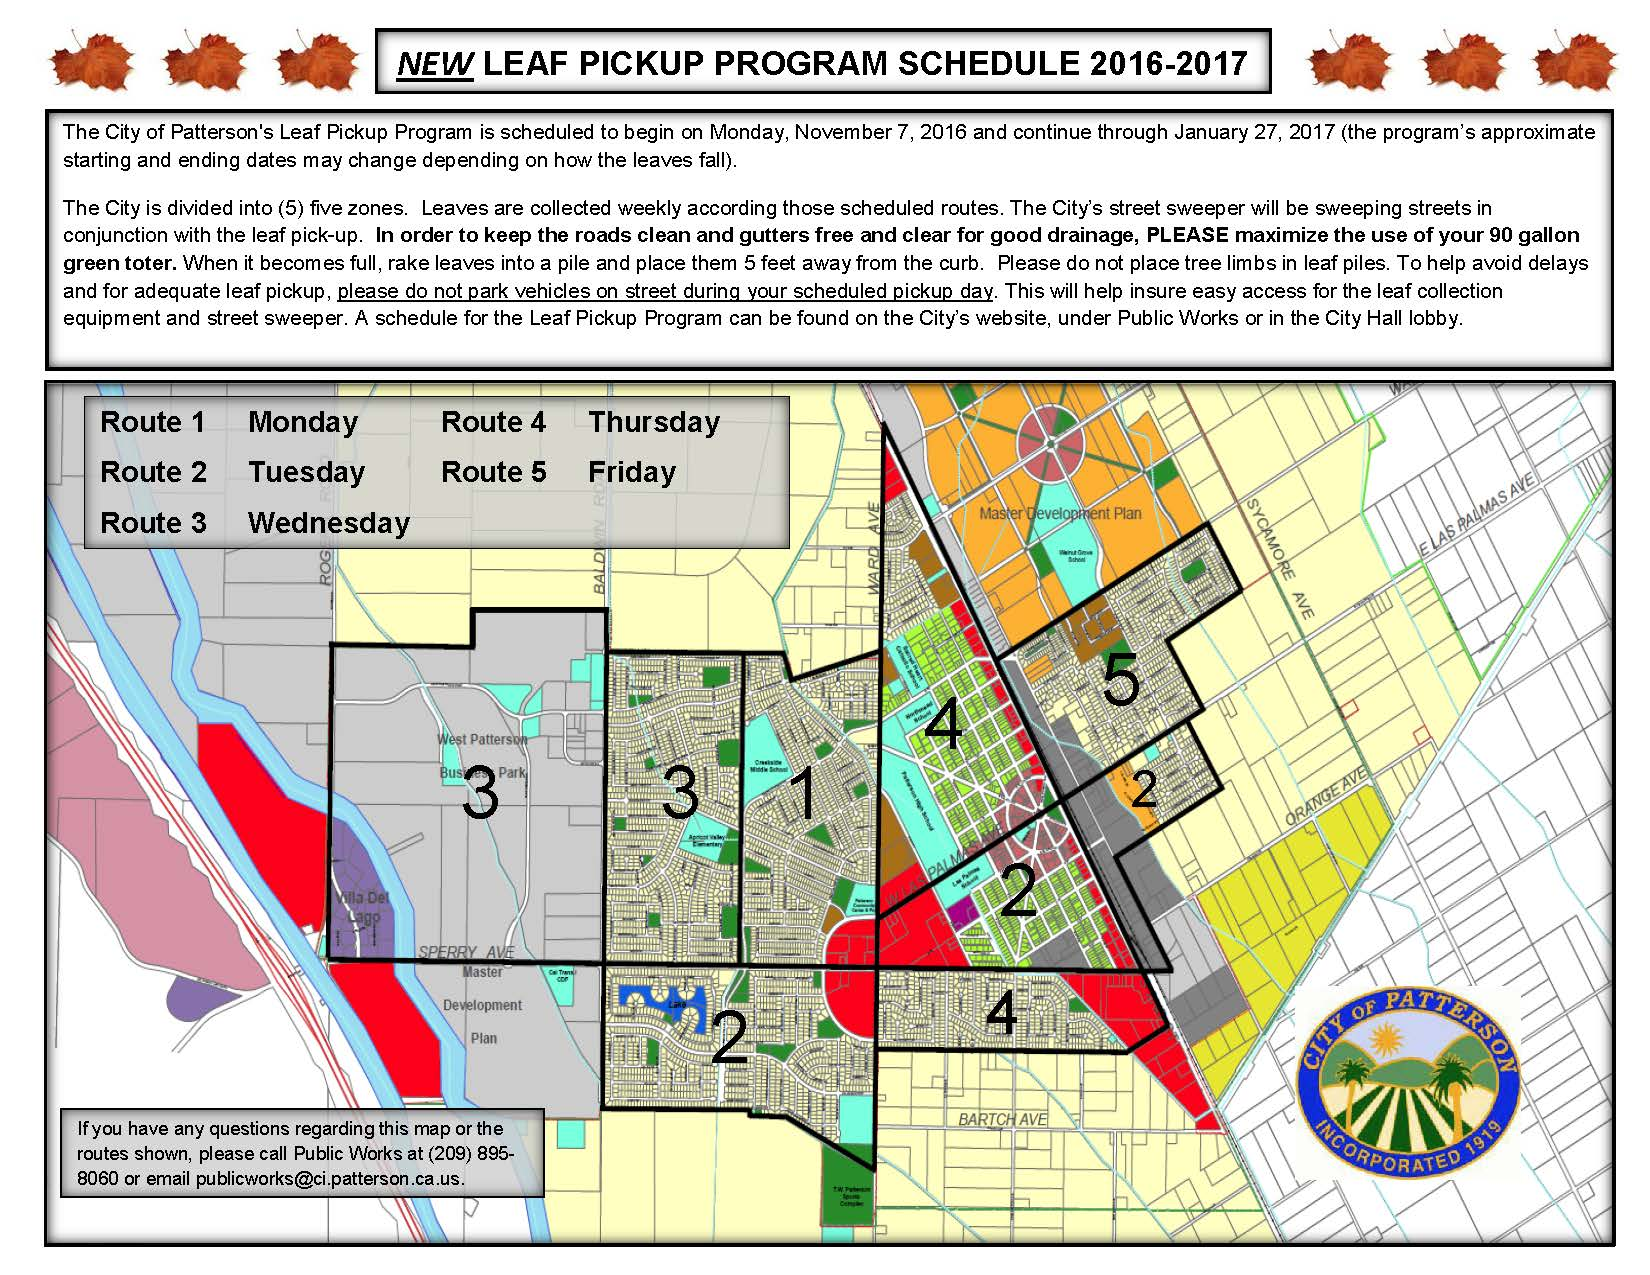 PW-F347 2016 Leaf Pickup Schedule